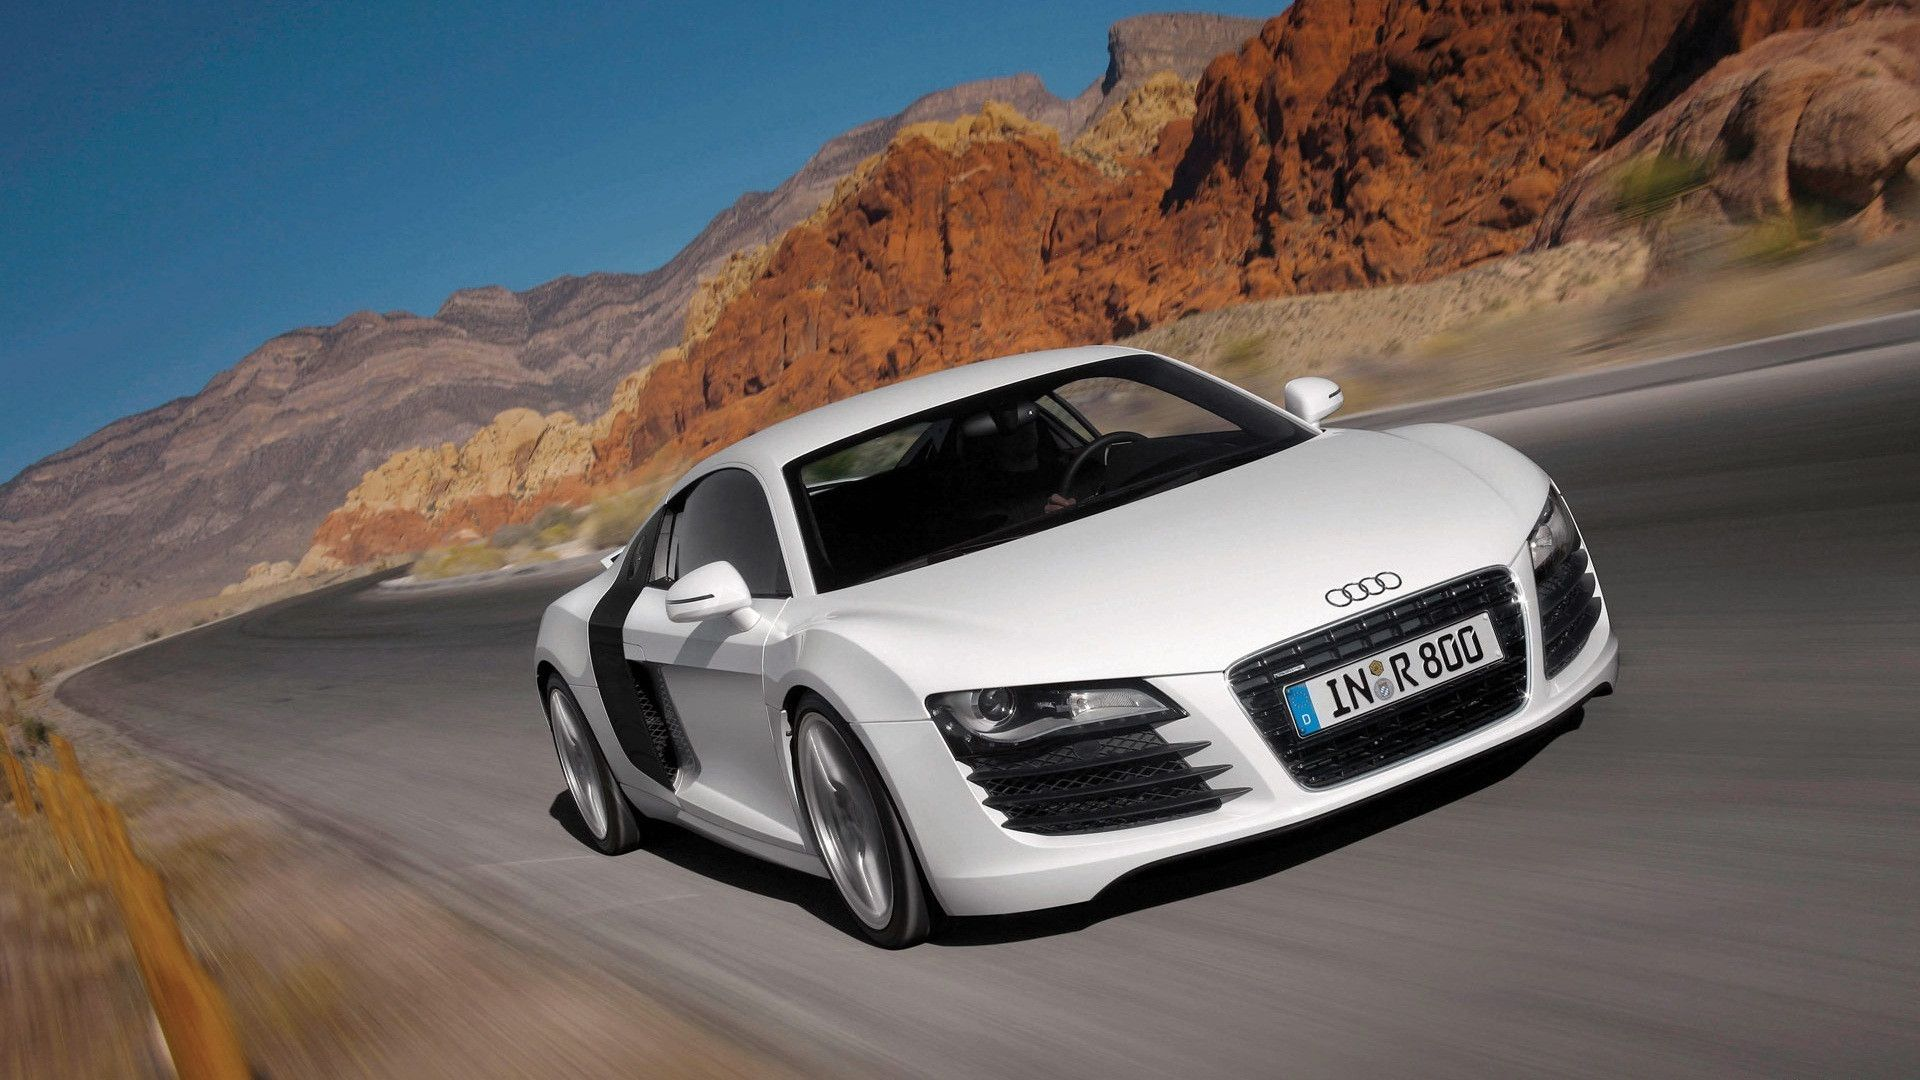 audi r8 wallpapers hd - wallpaper cave | hd wallpaper | pinterest